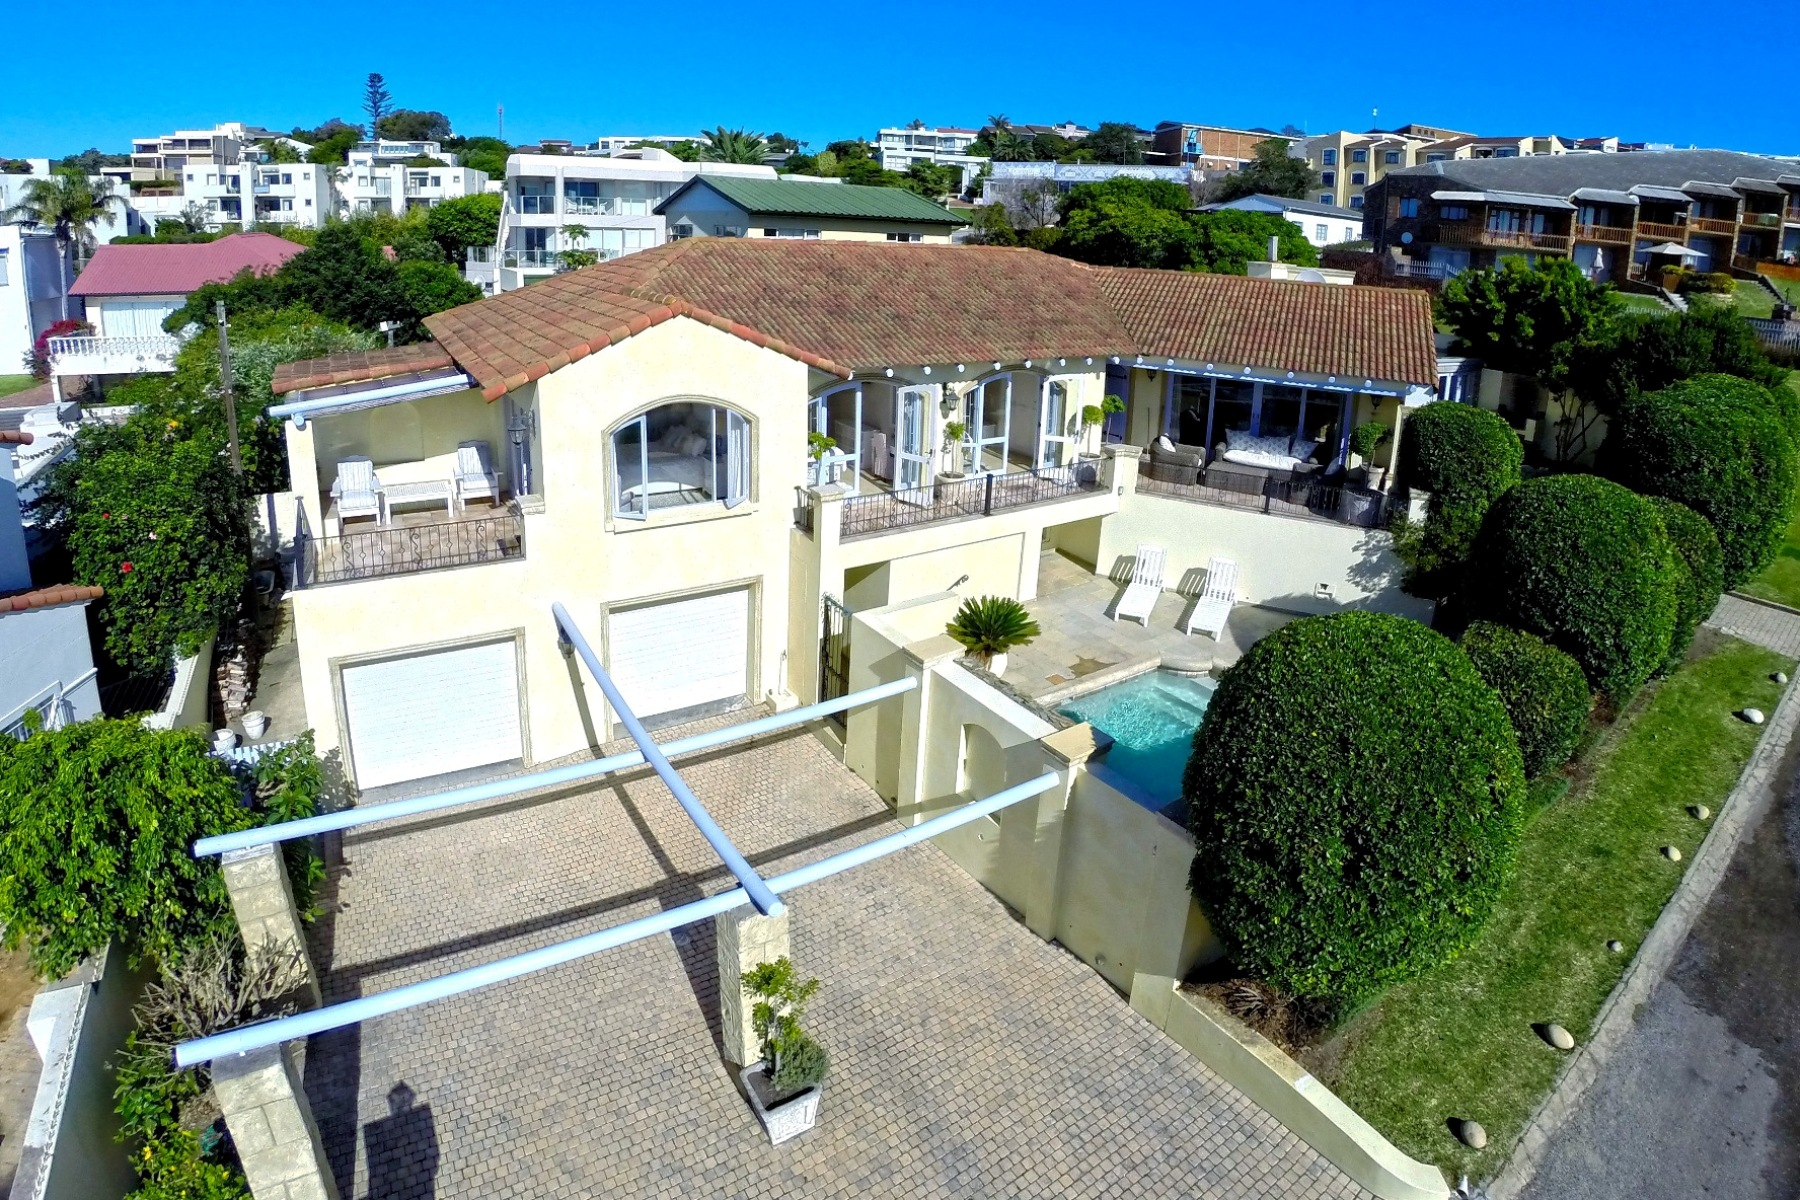 Single Family Home for Sale at Stunning Old Plett Home Plettenberg Bay, Western Cape, 6600 South Africa